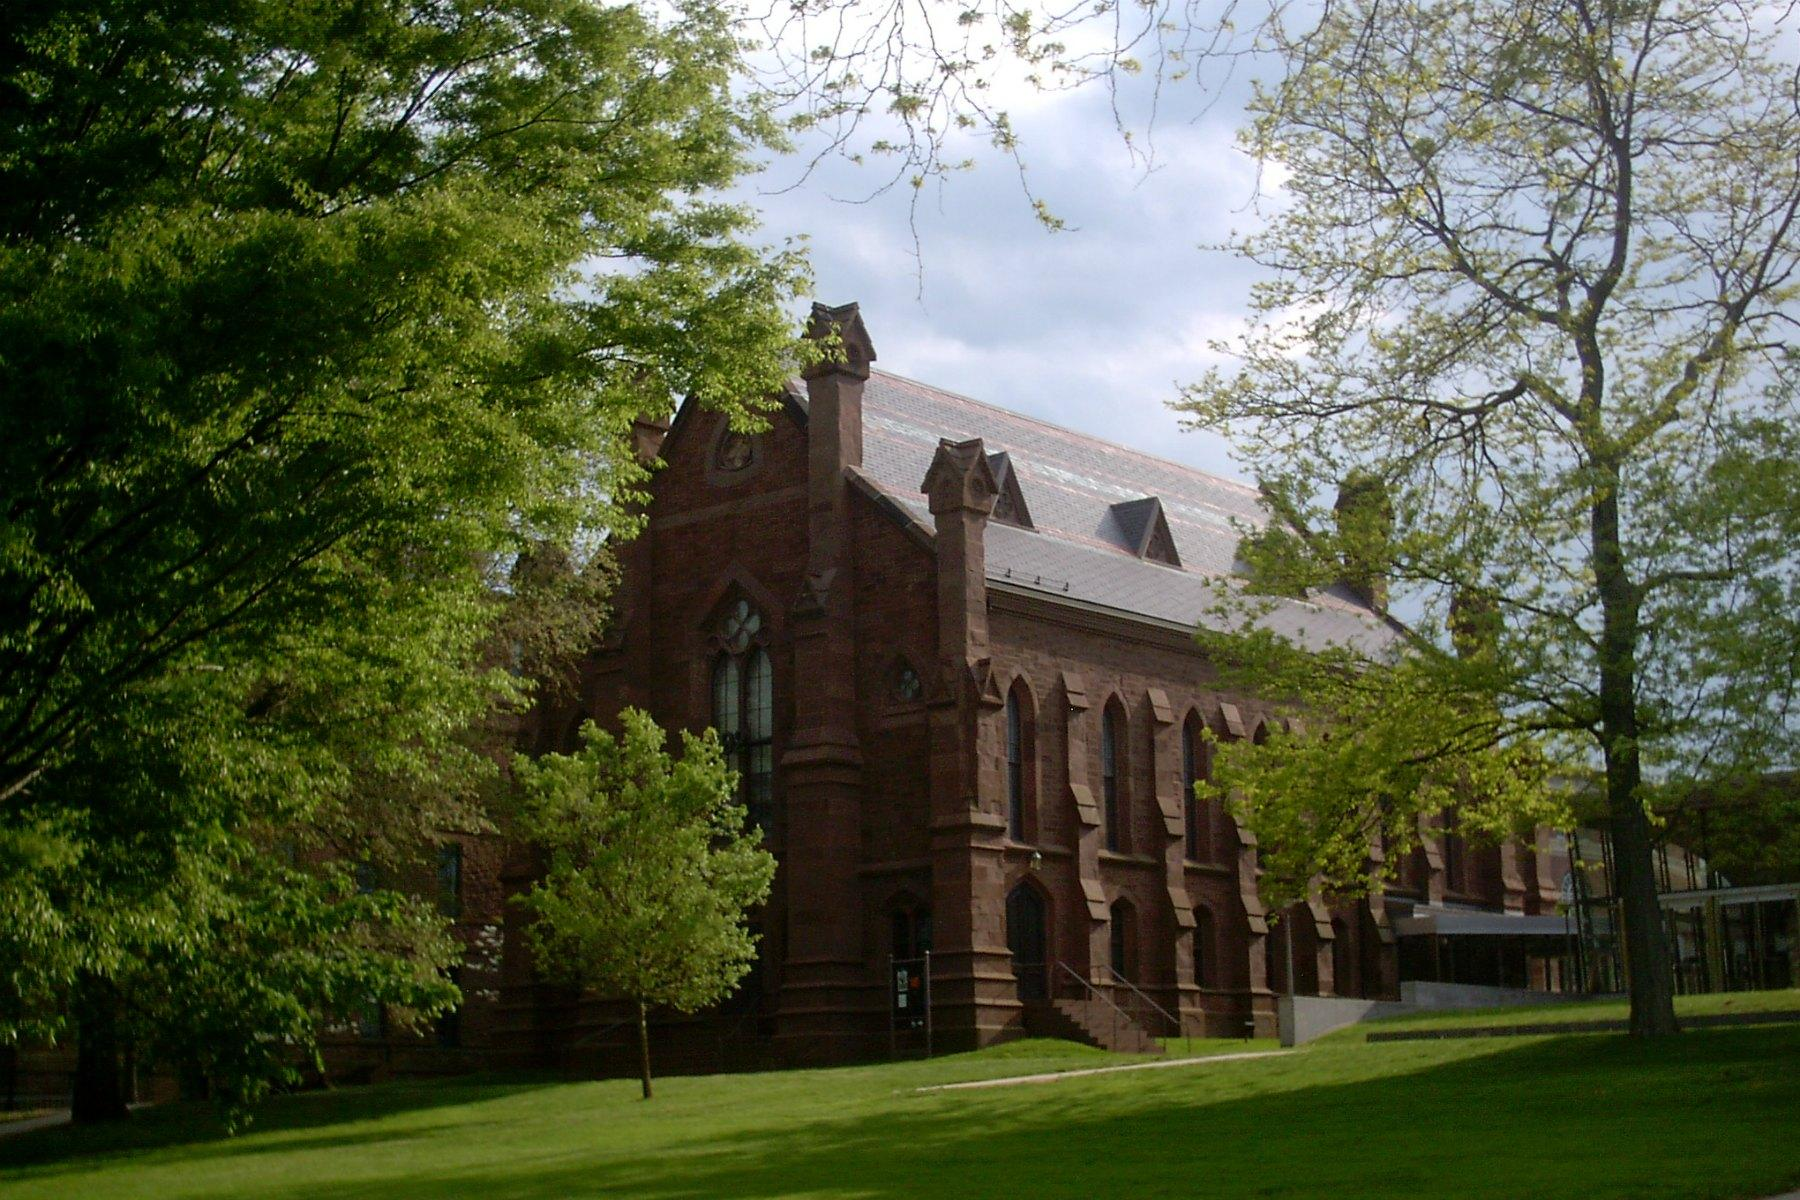 Wesleyan University in Middletown, Connecticut is one of many schools to go test-optional. Photo by Wikicommons user Steadyjohn.